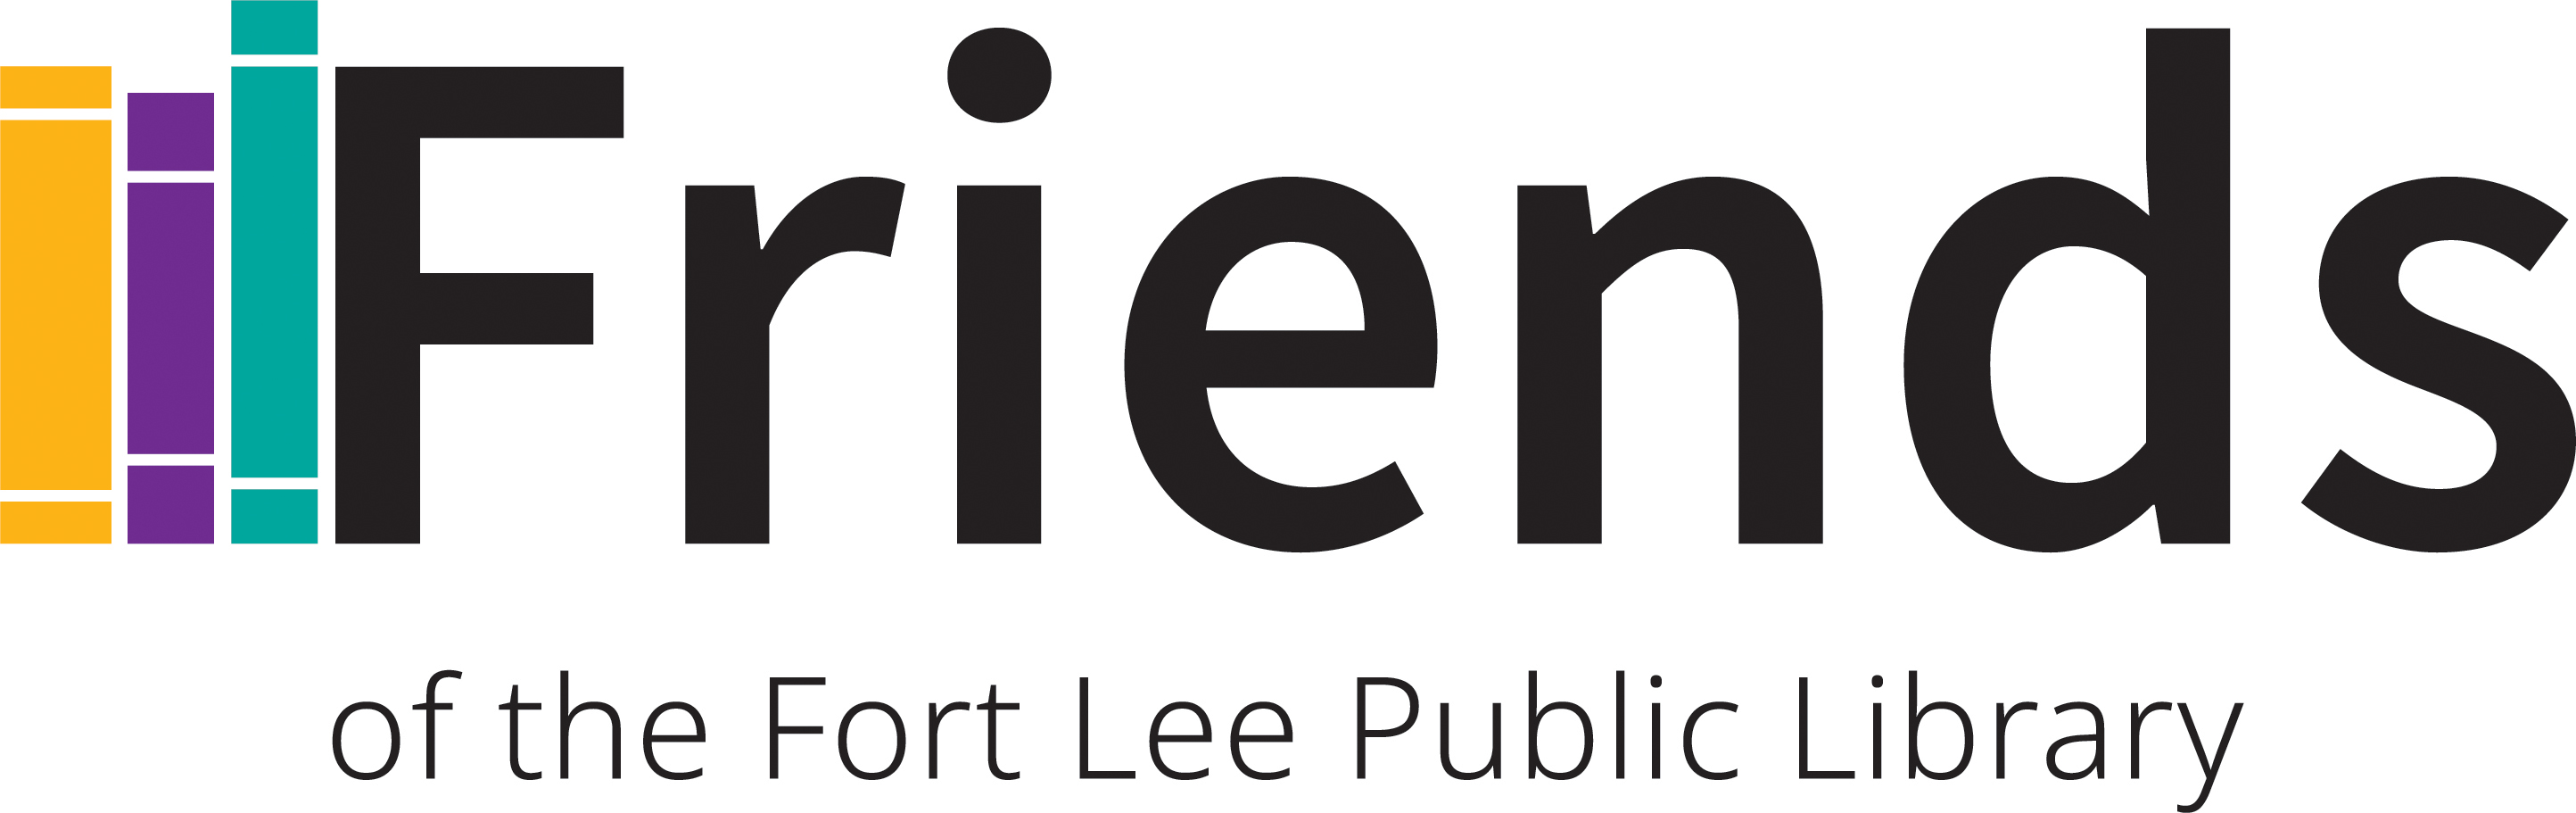 Friends of the Fort Lee Public Library logo